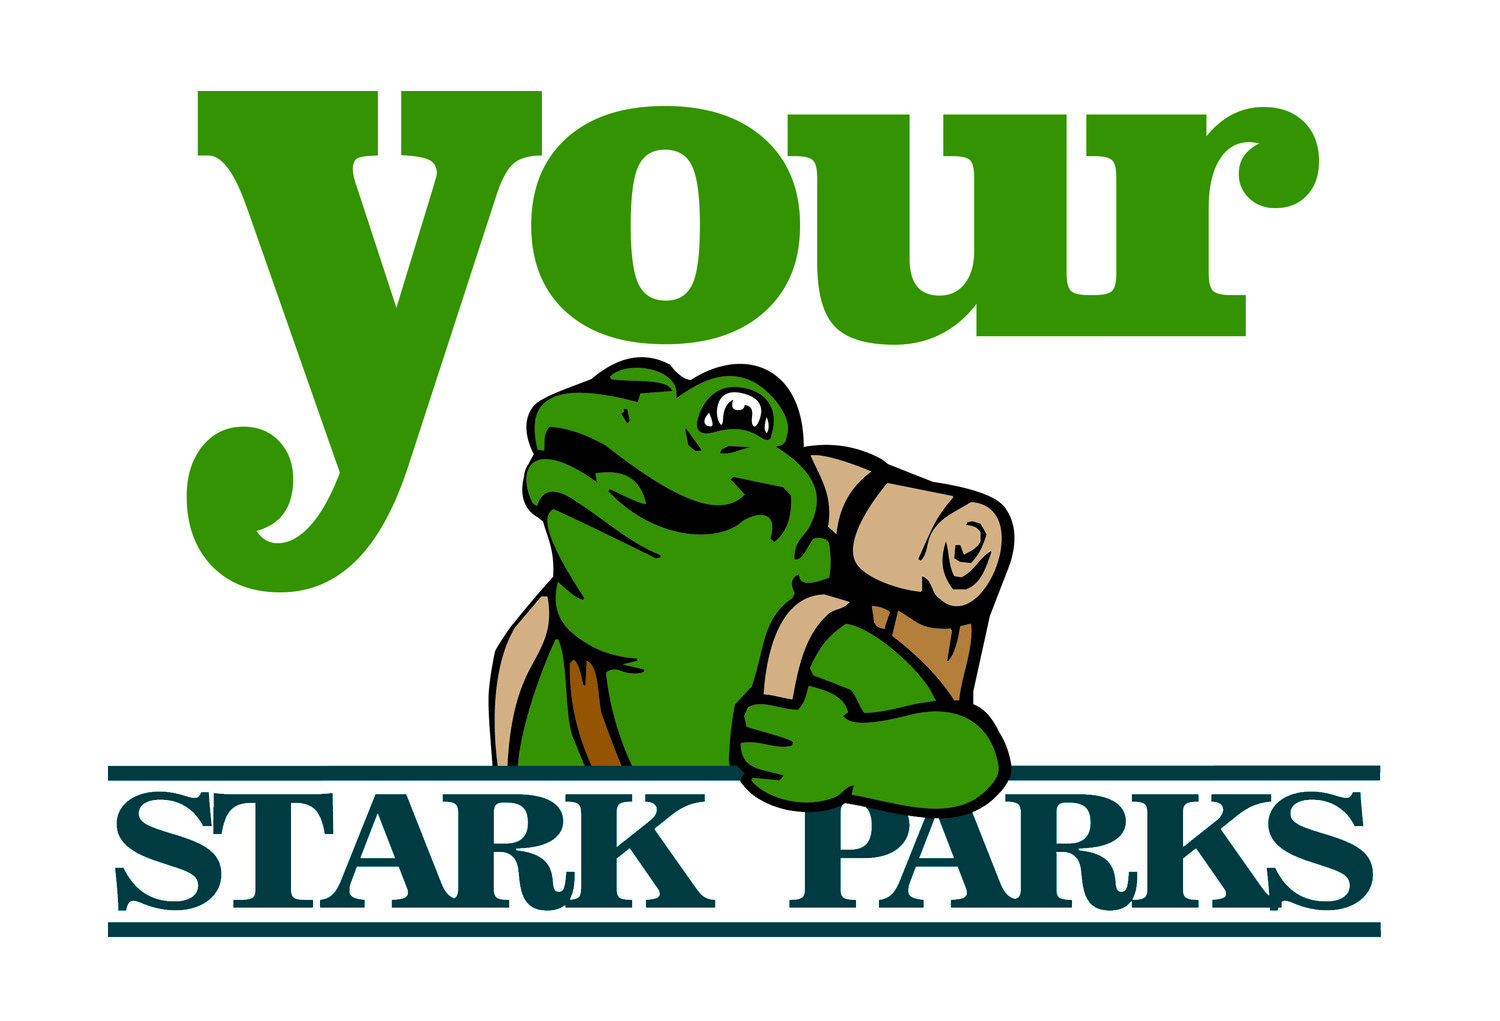 Your Stark Parks